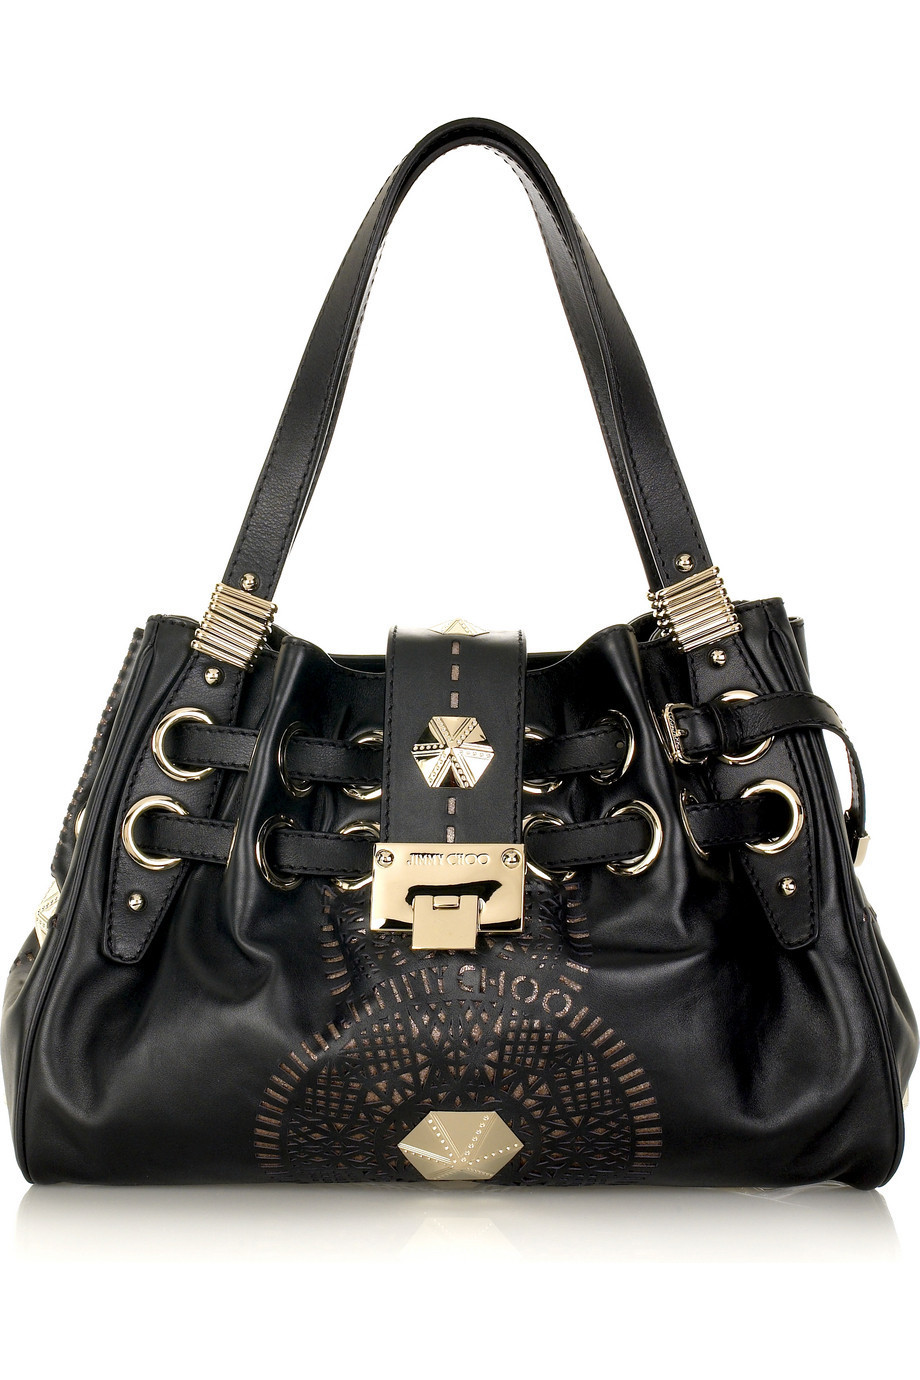 Jimmy Choo Riki lazer-cut leather bag | NET-A-PORTER.COM from net-a-porter.com